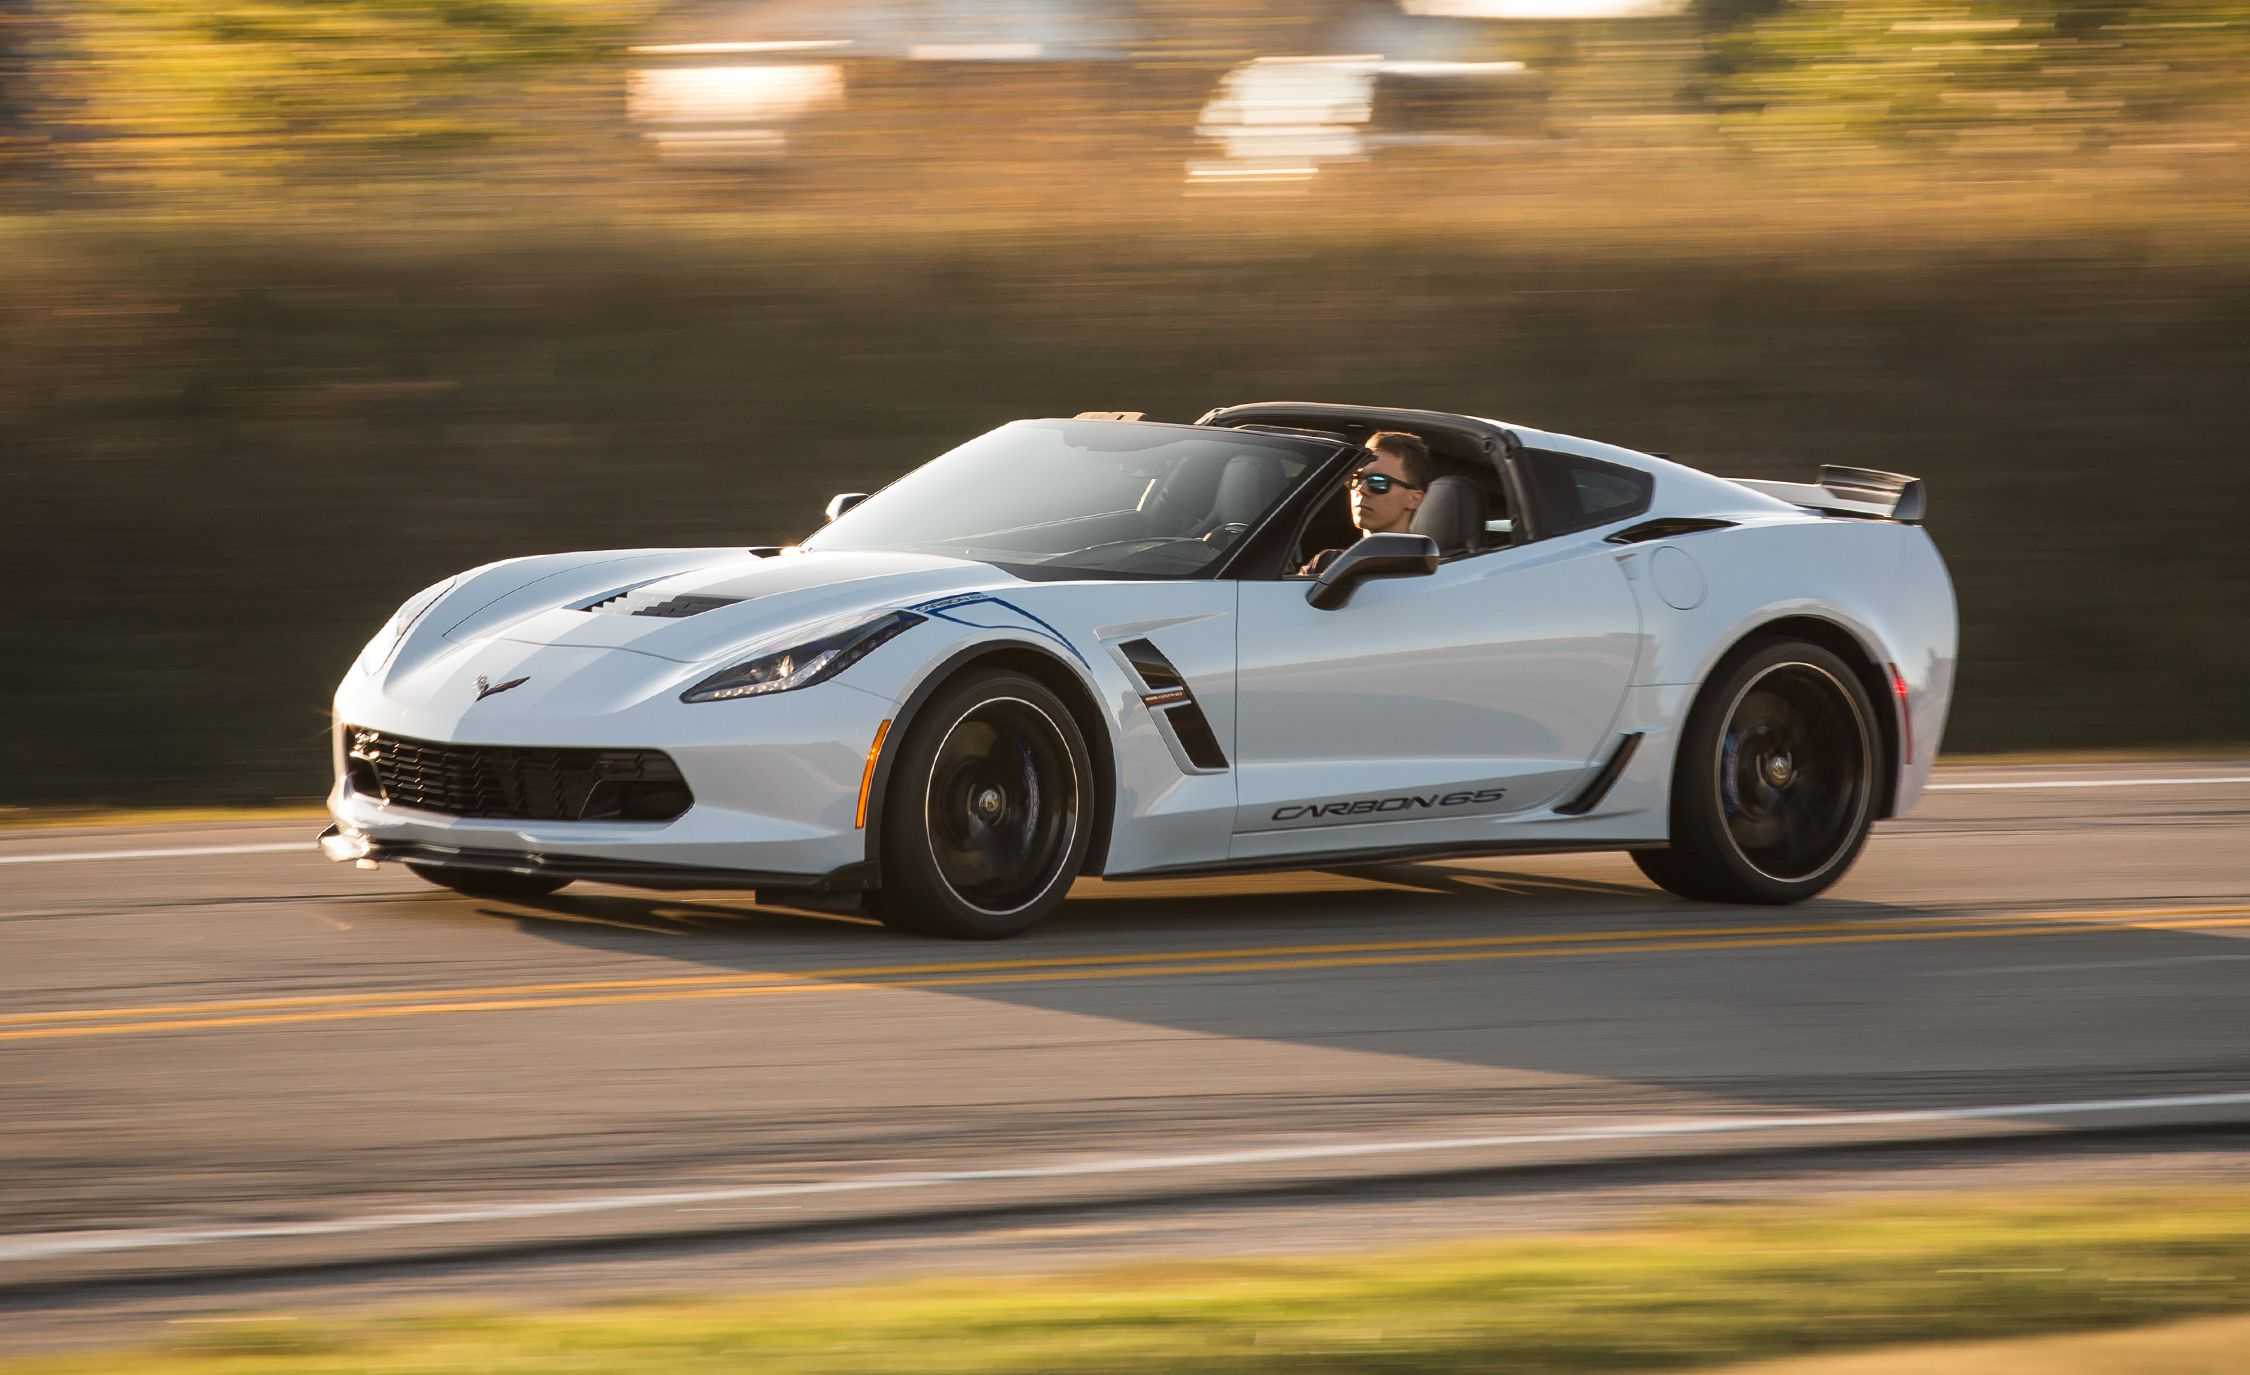 2019 10 Best Cars Our Favorites Are Full Of Personality Fun To Drive And Deliver On Their